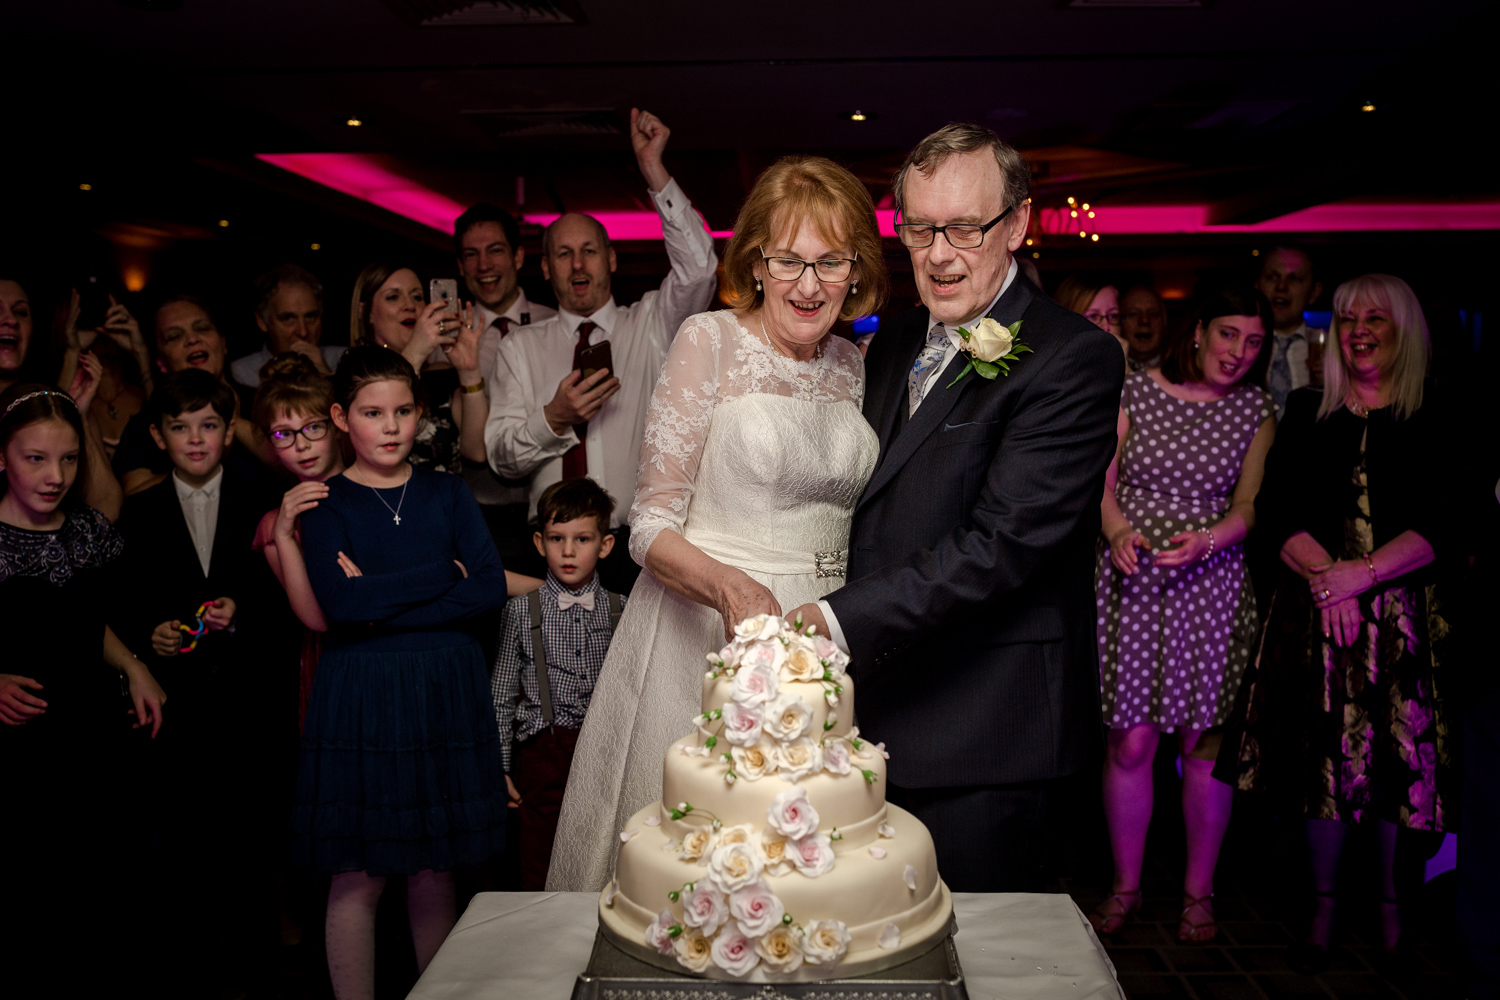 Cutting of the wedding cake at the Cottons Hotel